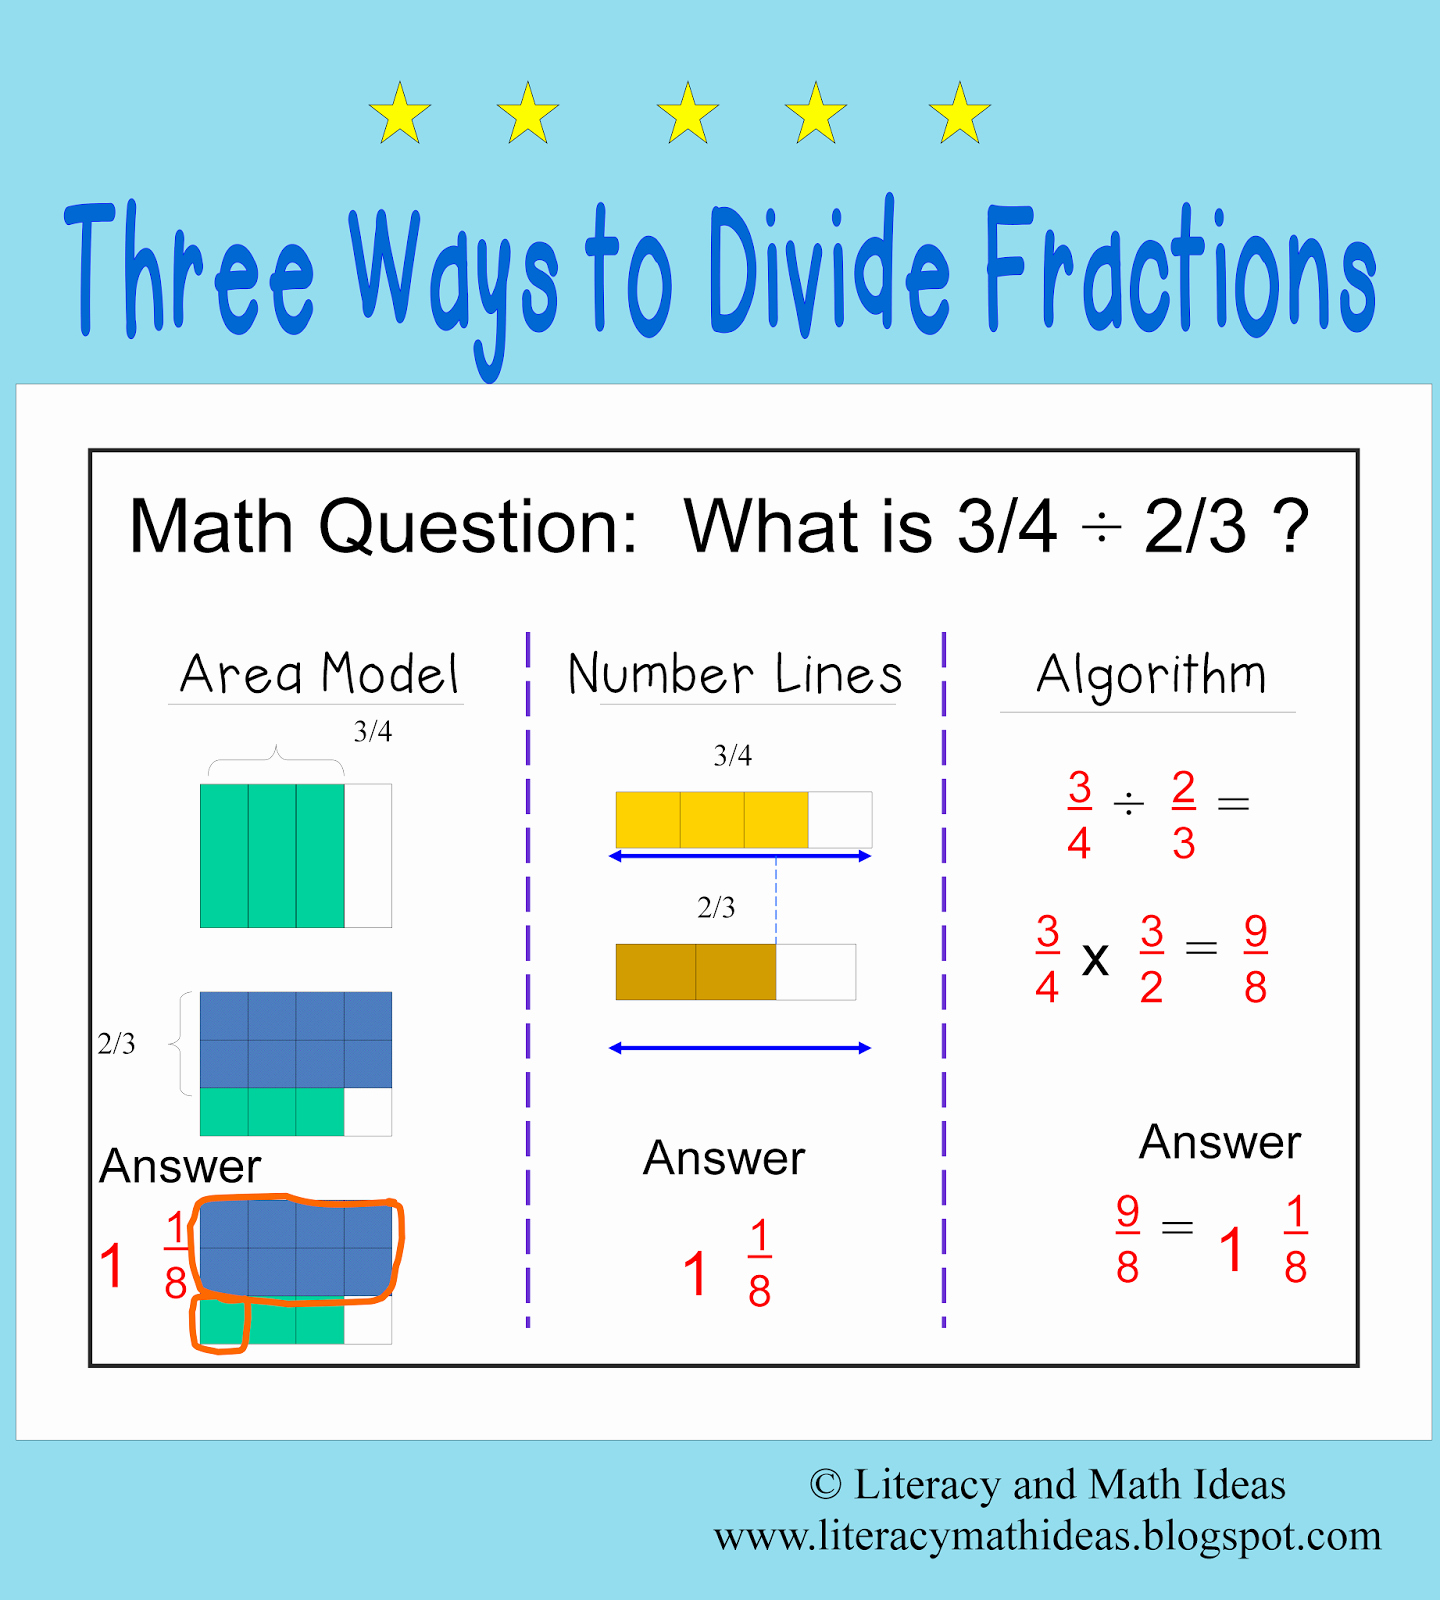 Dividing Fractions Using Models Worksheet Beautiful Literacy & Math Ideas Three Ways to Divide Fractions